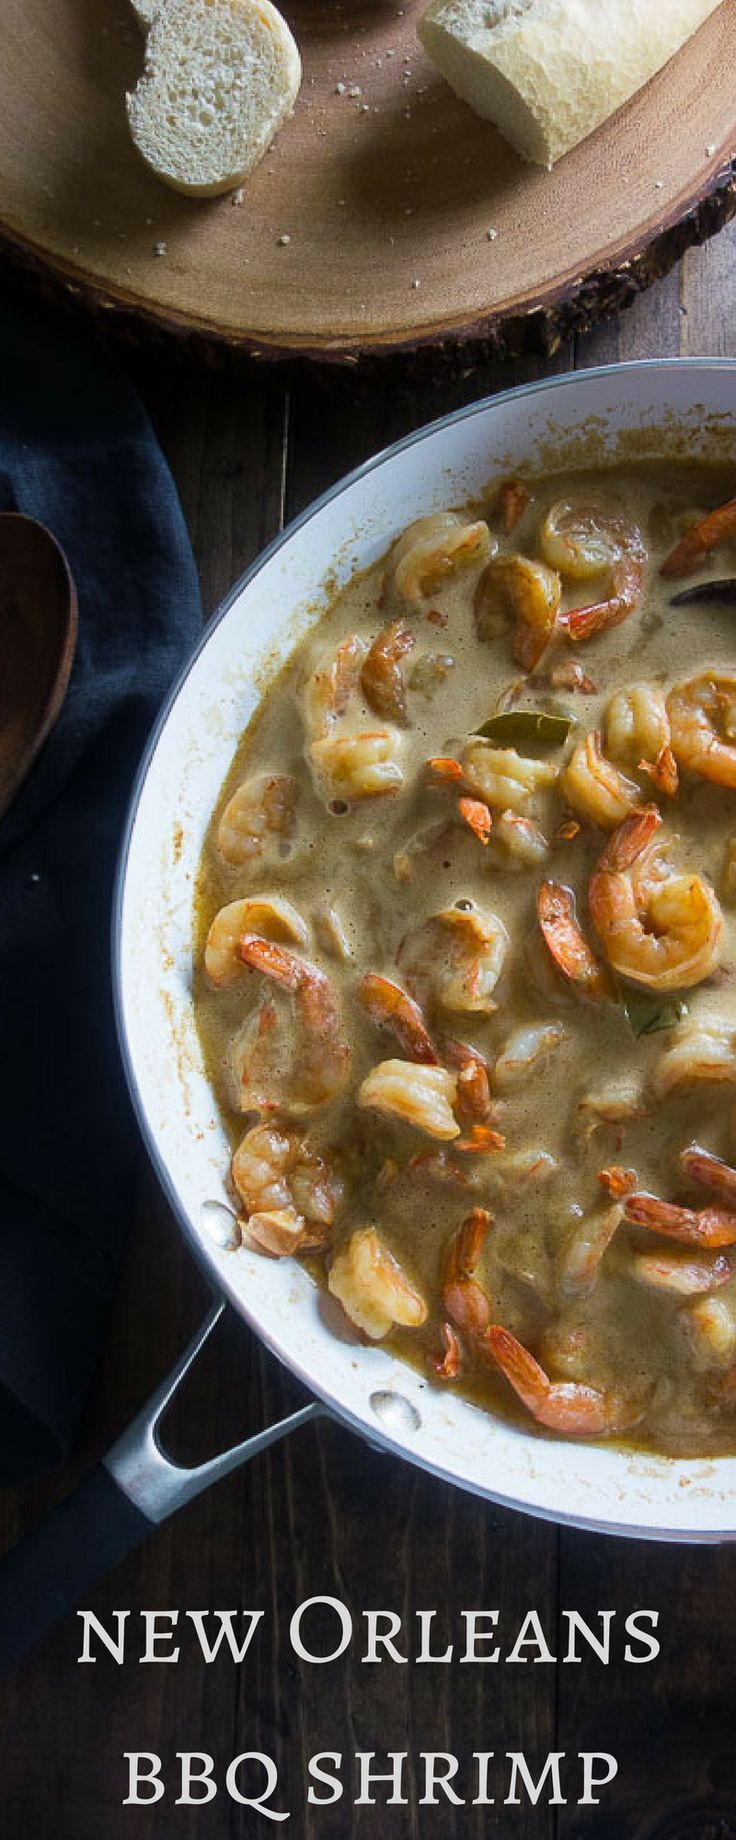 This 15 minute New Orleans BBQ Shrimp recipe is full of flavor, made with copious amounts of butter Worcestershire sauce and good old Cajun seasoning with a kick! new orleans food | cajun and creole recipes | spicy shrimp recipe | 10 minute meals | spicy cajun shrimp | cajun BBQ shrimp | worcestershire sauce shrimp | emerils cajun shrimp | spicy new orleans shrimp | barbecued shrimp via @Went Here 8 This